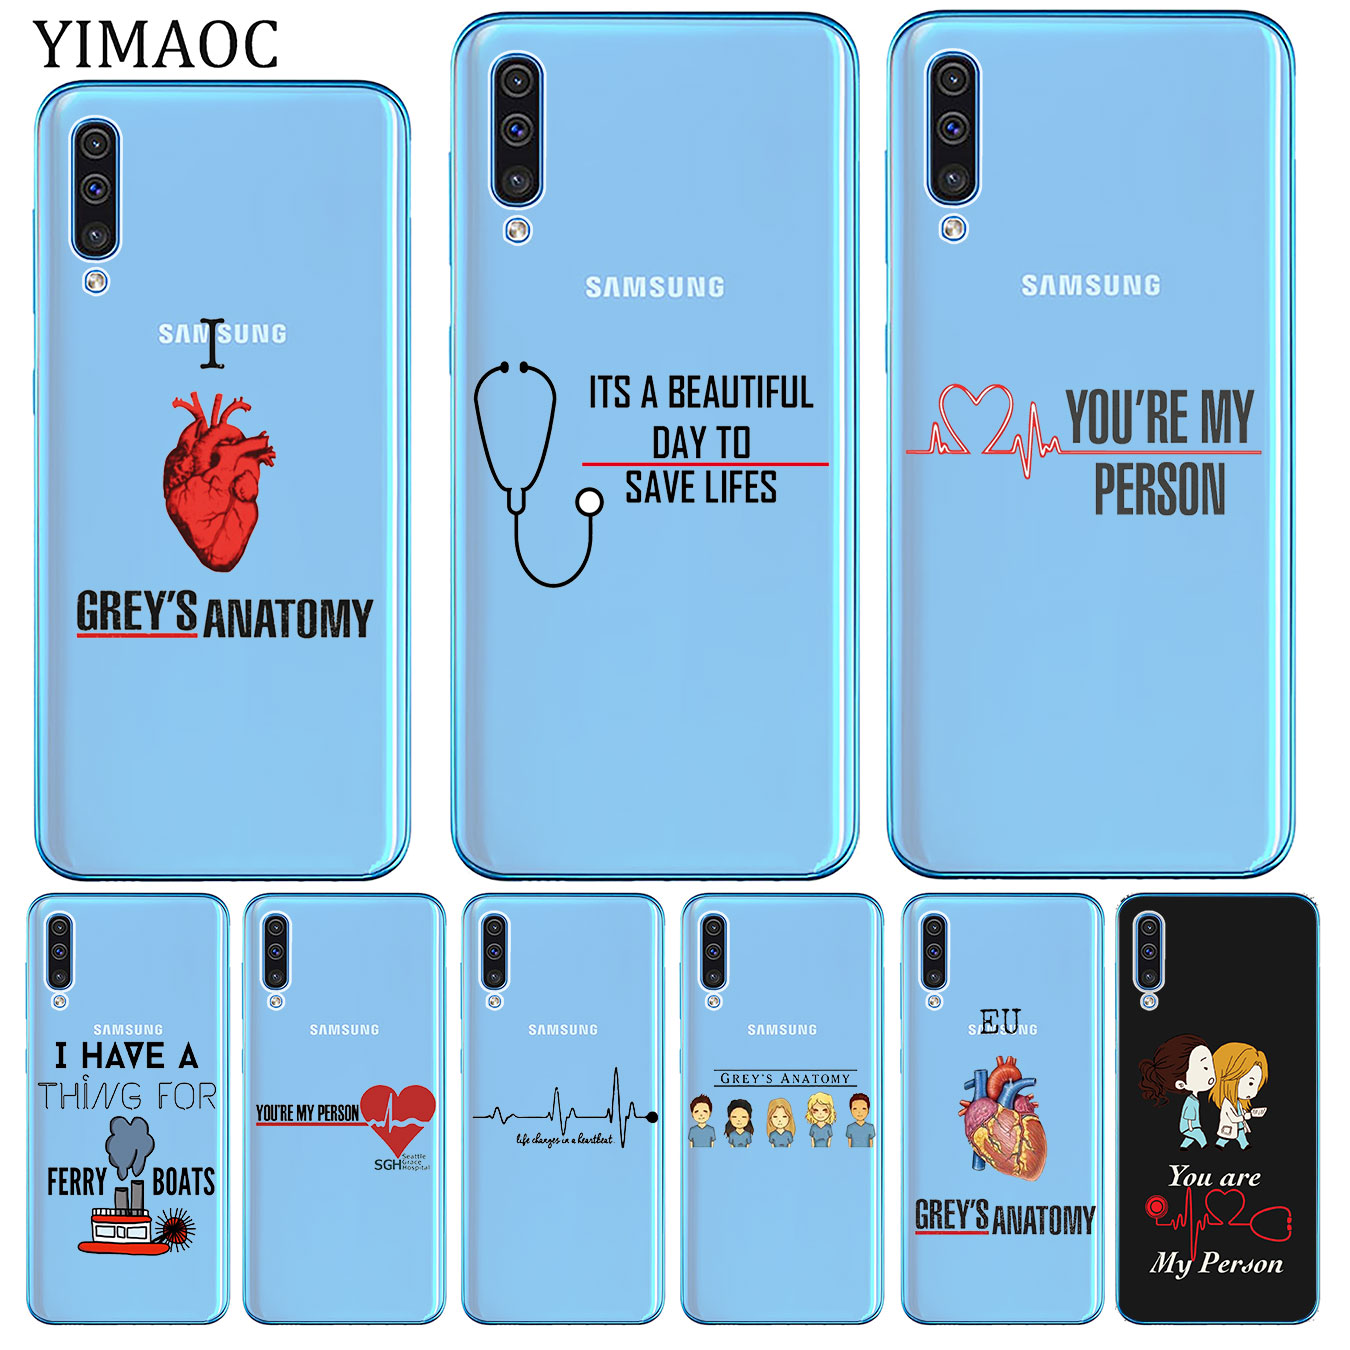 YIMAOC Grey's Grey is Anatomy TV Soft Phone Silicone <font><b>Case</b></font> for <font><b>Samsung</b></font> <font><b>Galaxy</b></font> <font><b>A70</b></font> A60 A50 A40 A30 A20 A10 M10 M20 M30 M40 A20E image